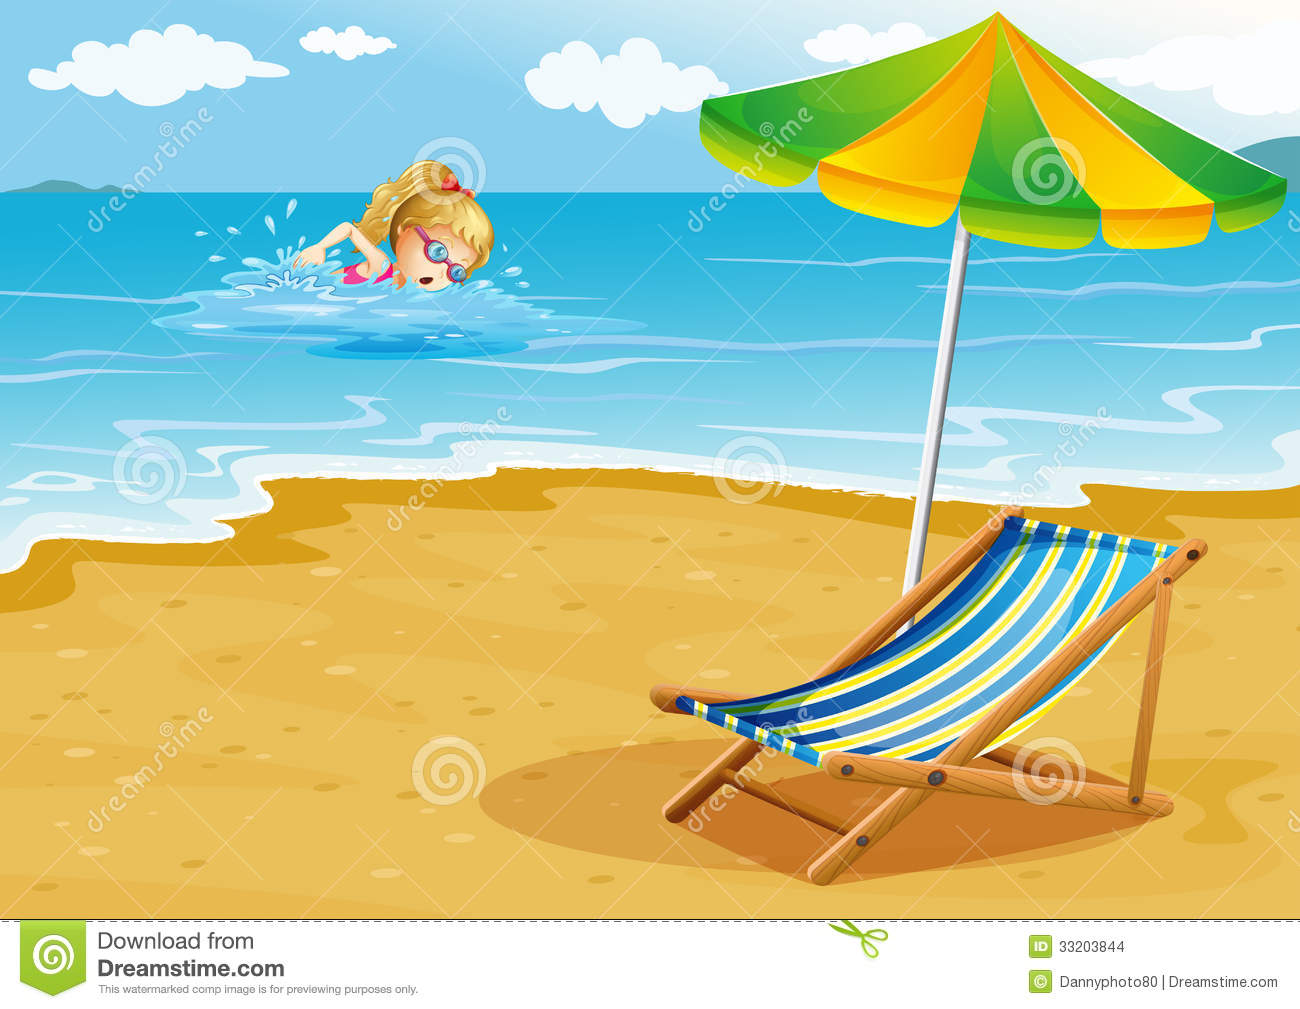 Beach chair drawing - A Girl Swimming At The Beach With A Chair